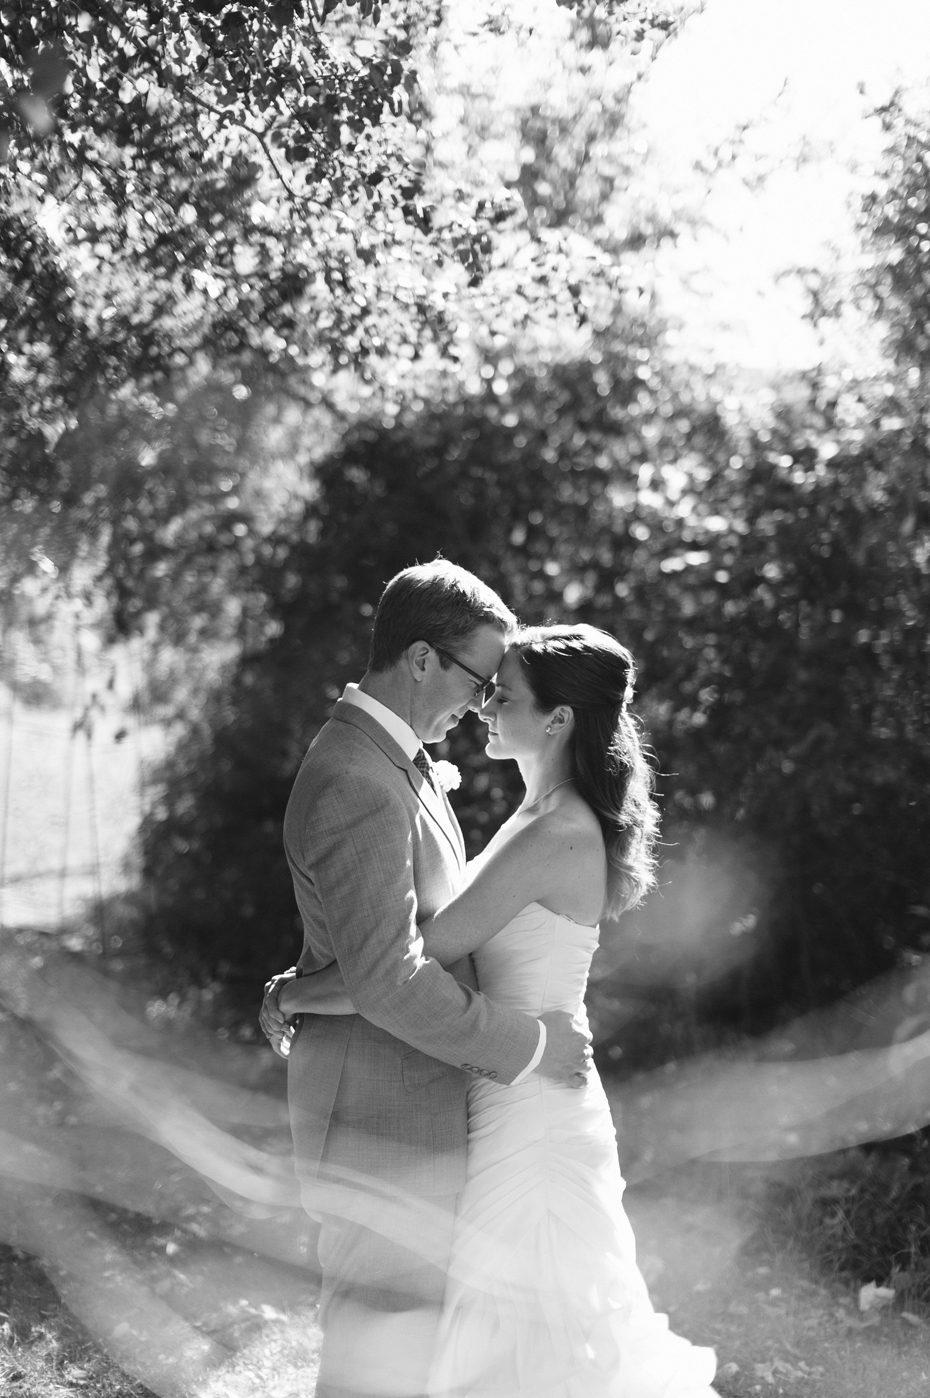 Black and white bride and groom portrait at Misty Farms by photojournalistic Michigan wedding photographer Heather Jowett.